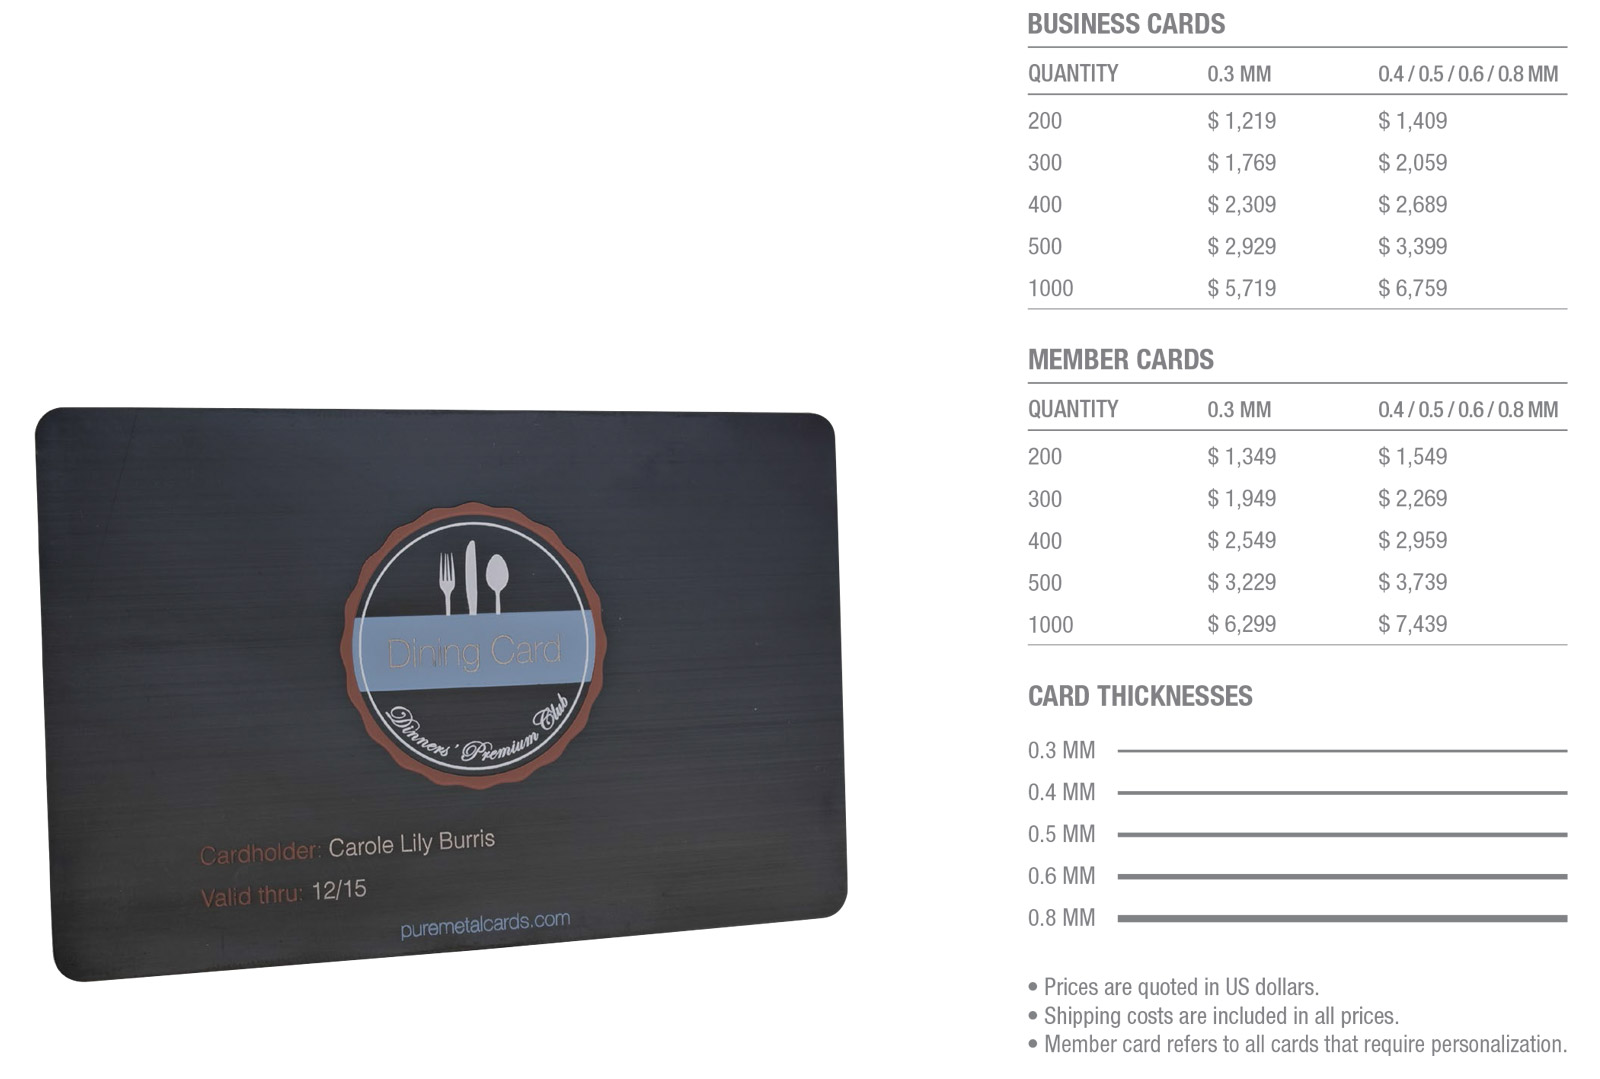 Matt-Black-Brushed-Stainless-Steel-Cards-Pricing-Table